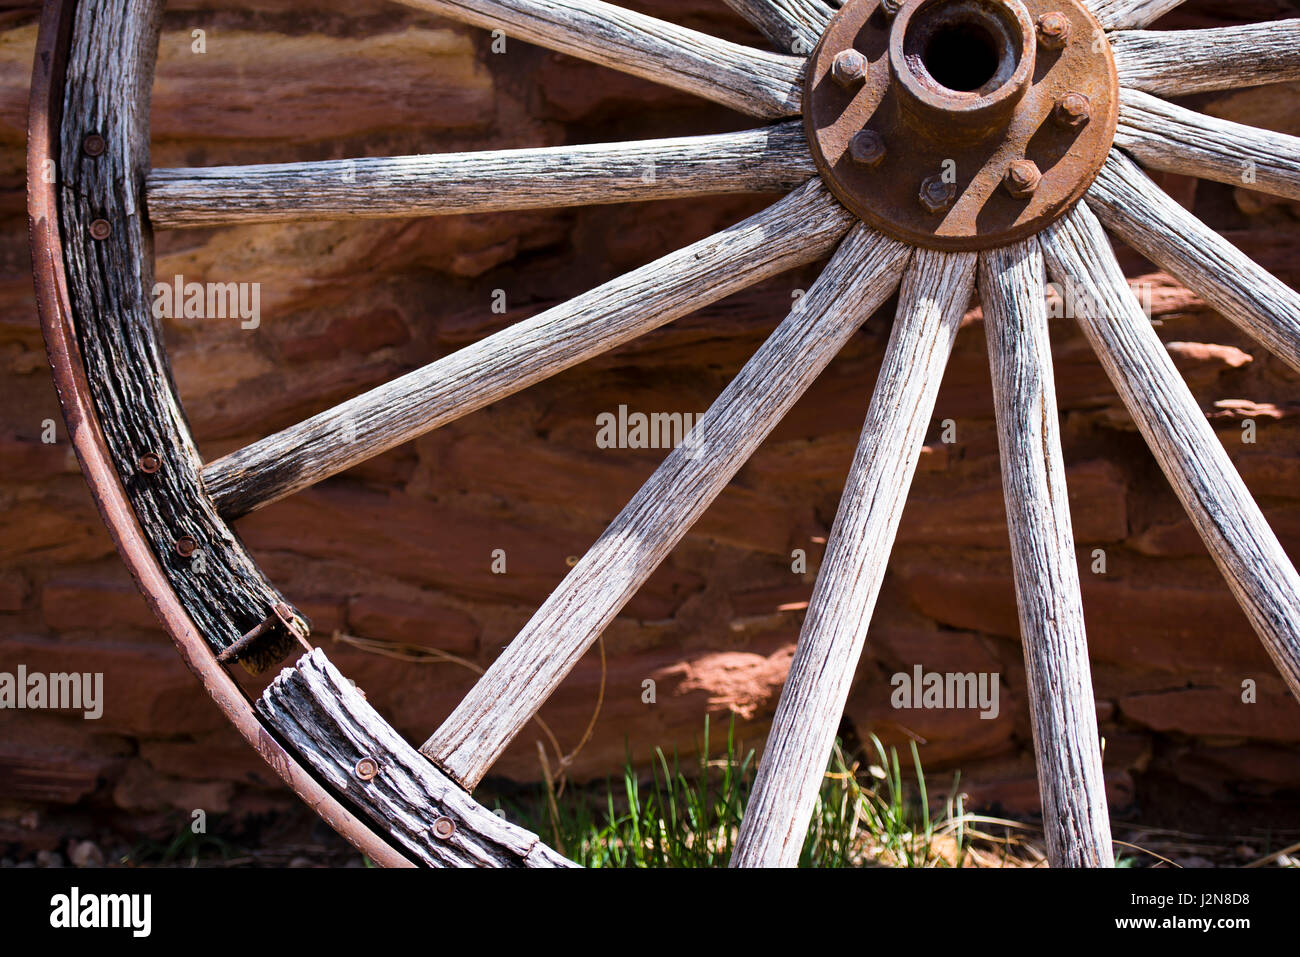 Detail of an old wooden wheel with rusty metal rim and the hub with bolts on the backdrop of a stone wall built - Stock Image